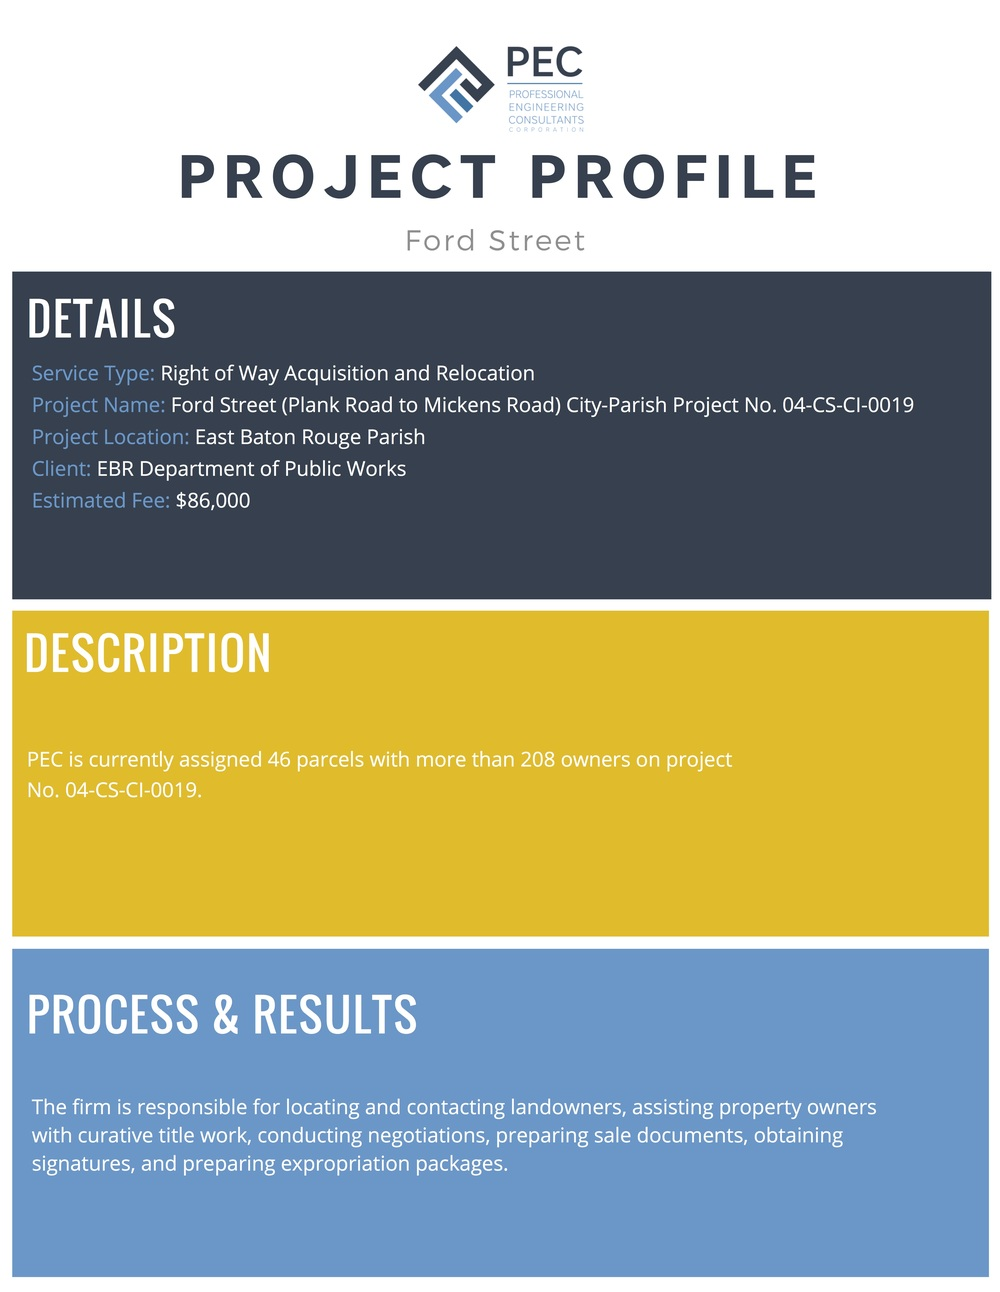 Project Profile_FordStreet.jpg